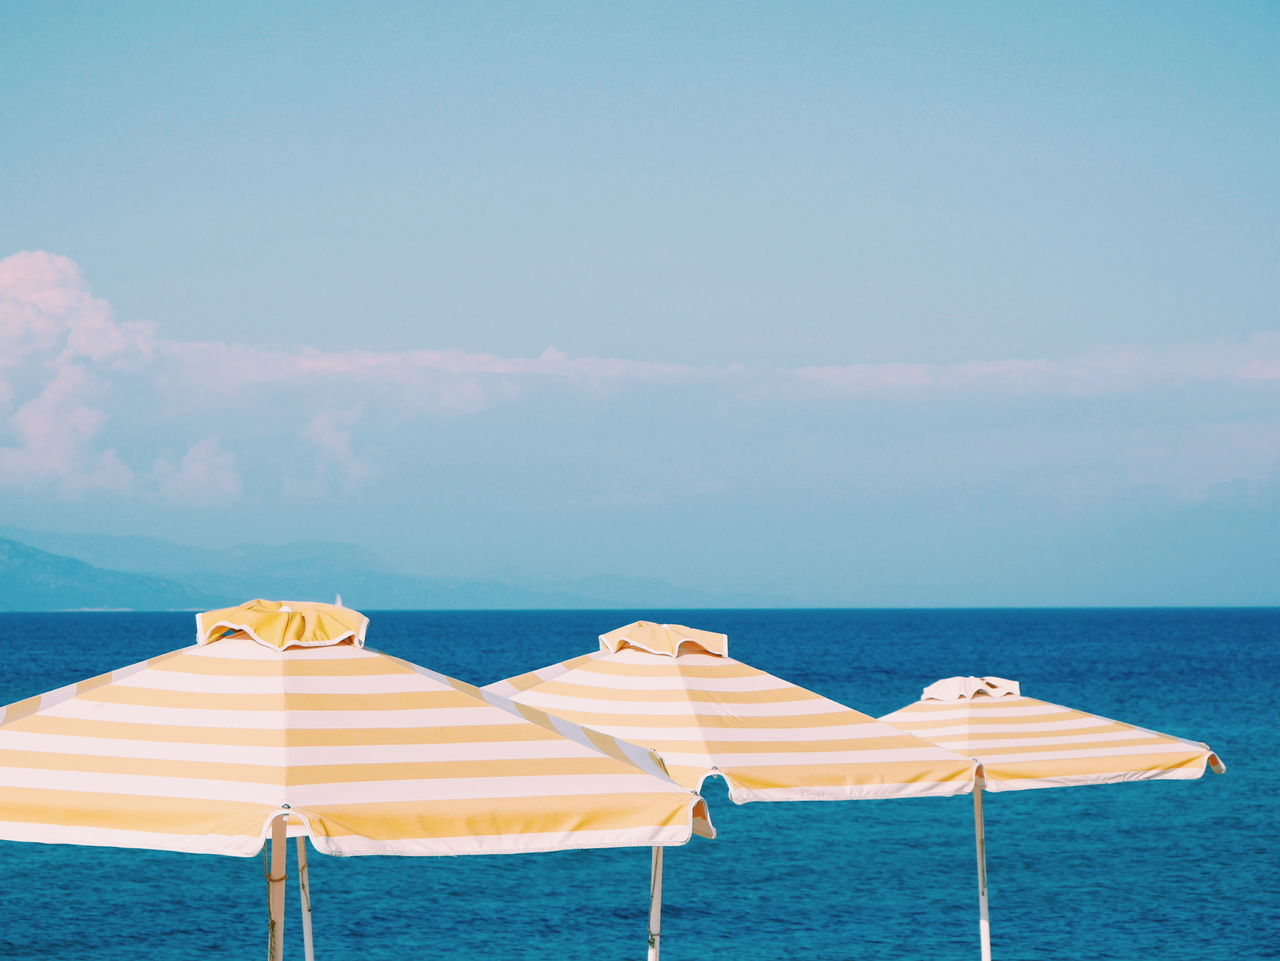 sea, water, beach, horizon over water, beach umbrella, beauty in nature, scenics, shore, nature, protection, summer, tranquility, sand, sky, tranquil scene, canopy, outdoors, no people, vacations, sun lounger, day, shelter, cloud - sky